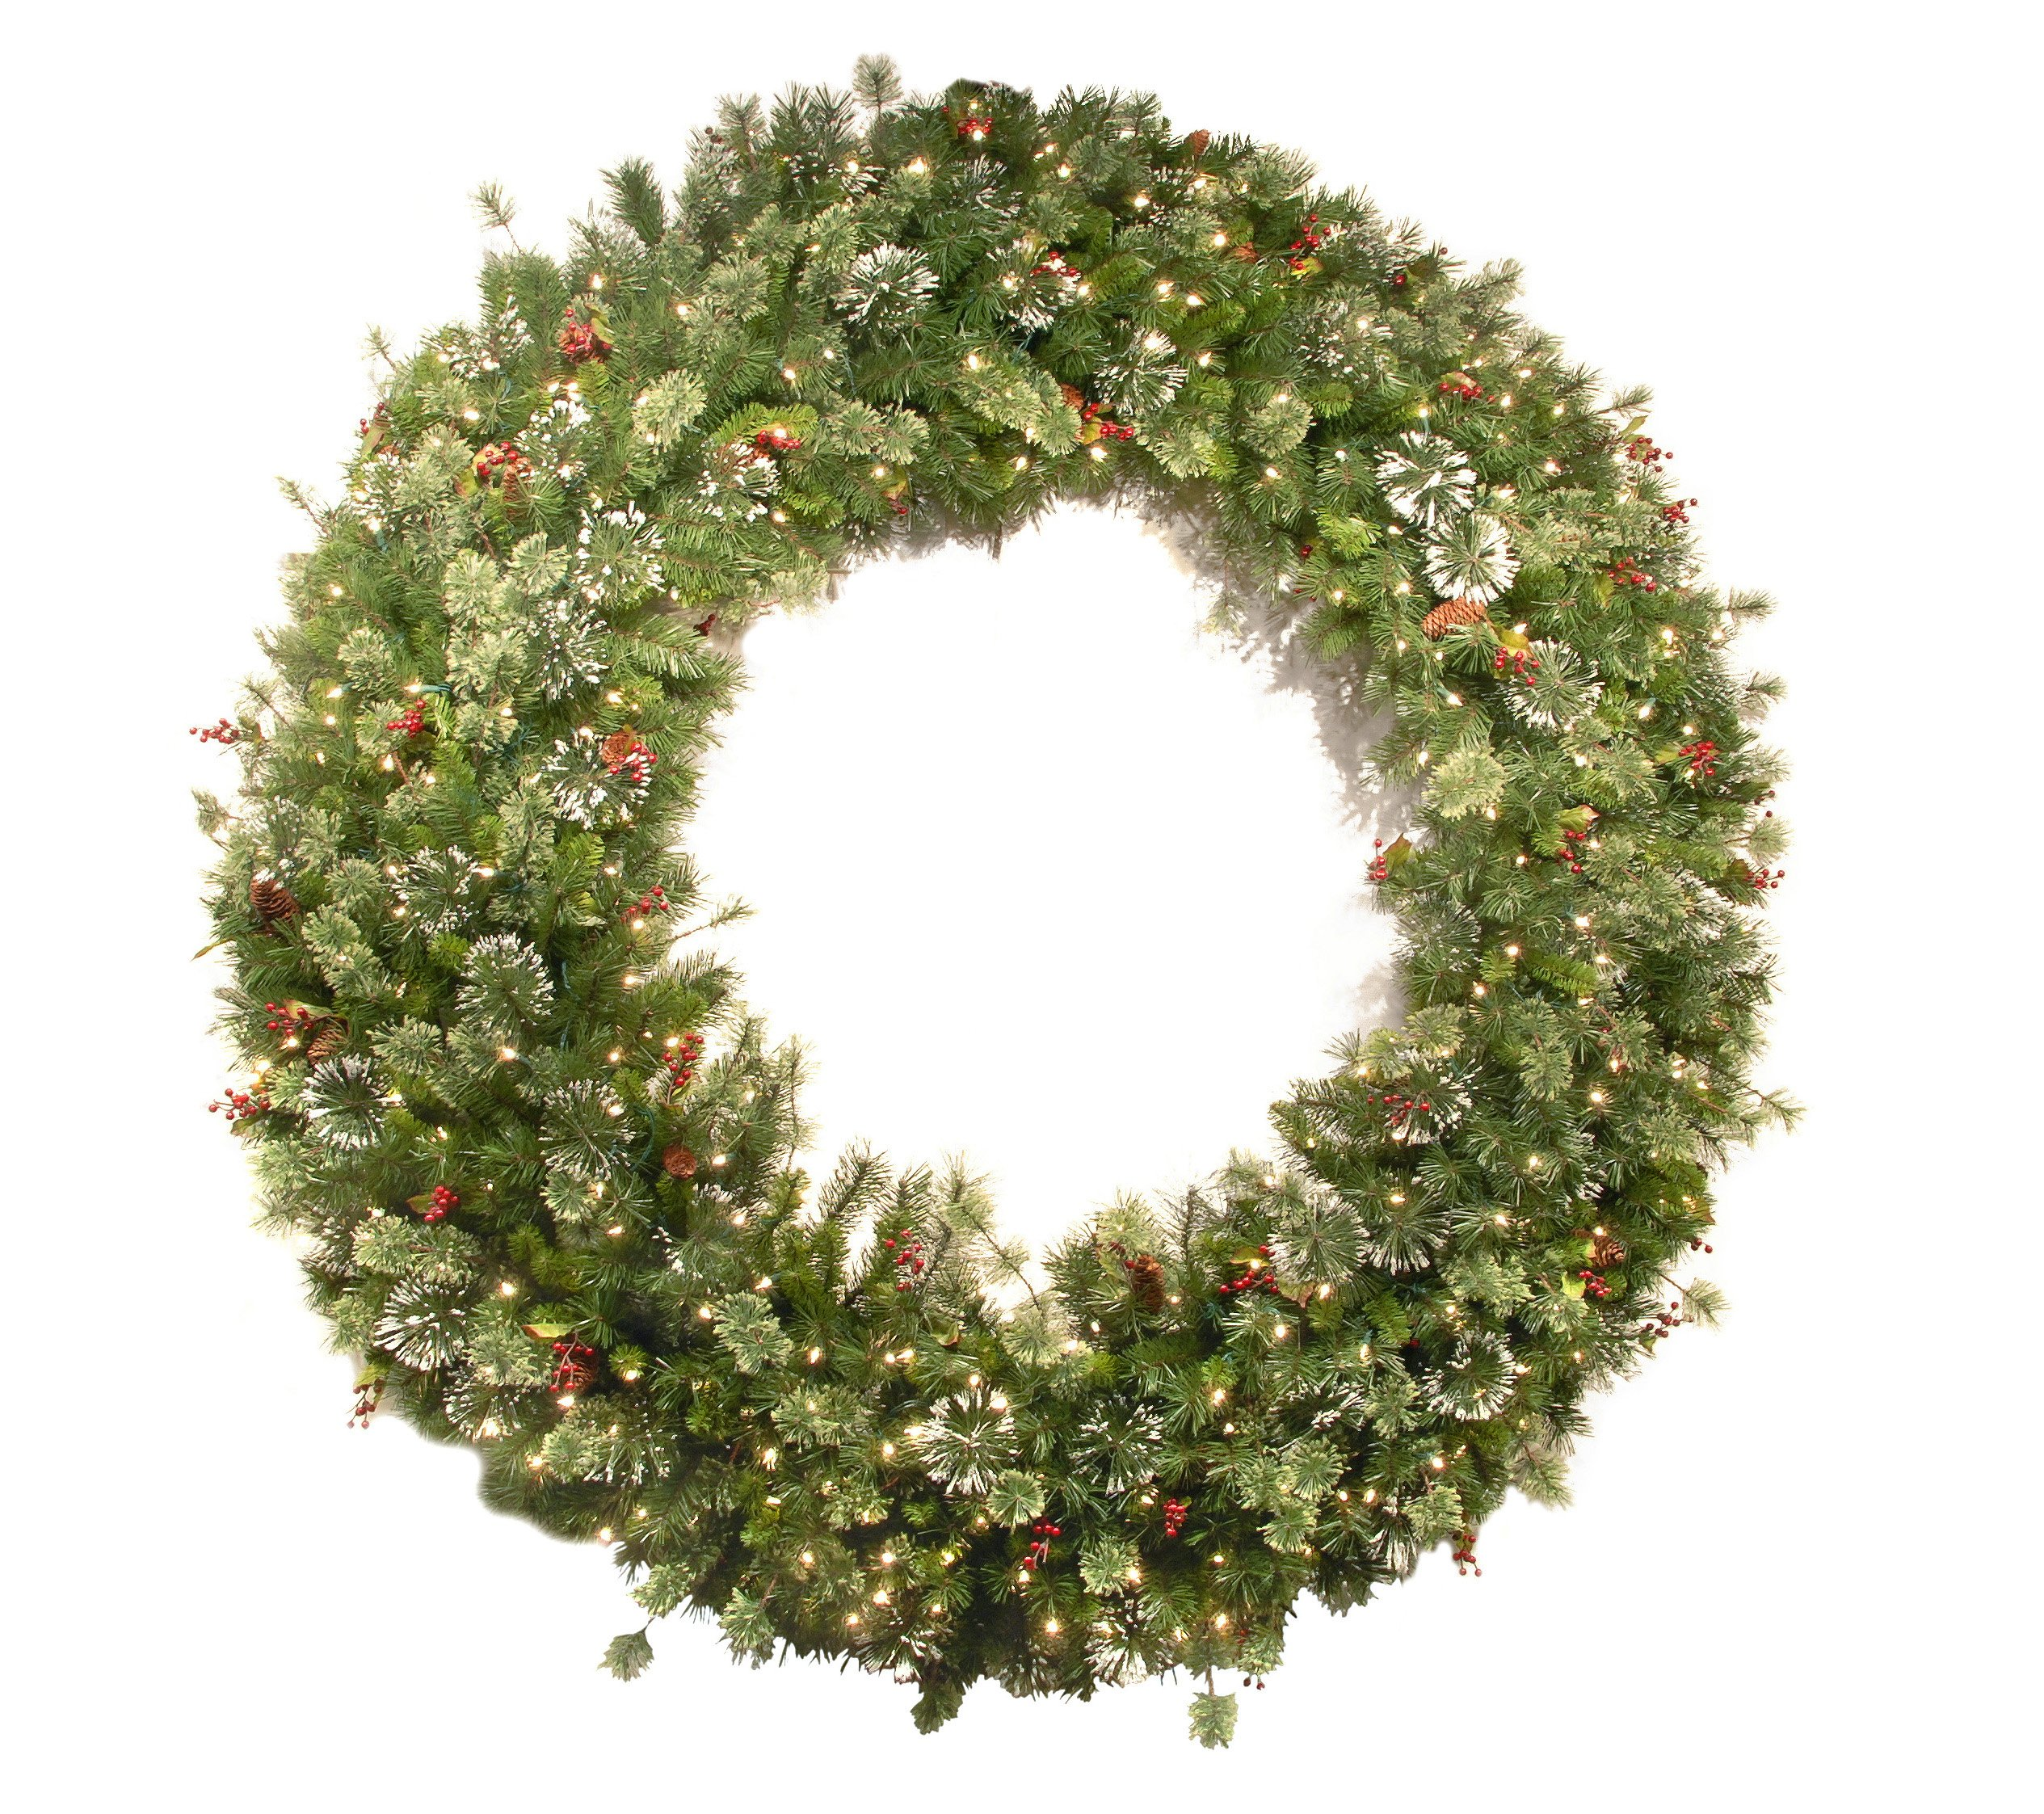 National Tree 72 Inch Wintry Pine Wreath with Cones, Red Berries, Snowflakes and 400 Clear Lights (WP1-300-72W)